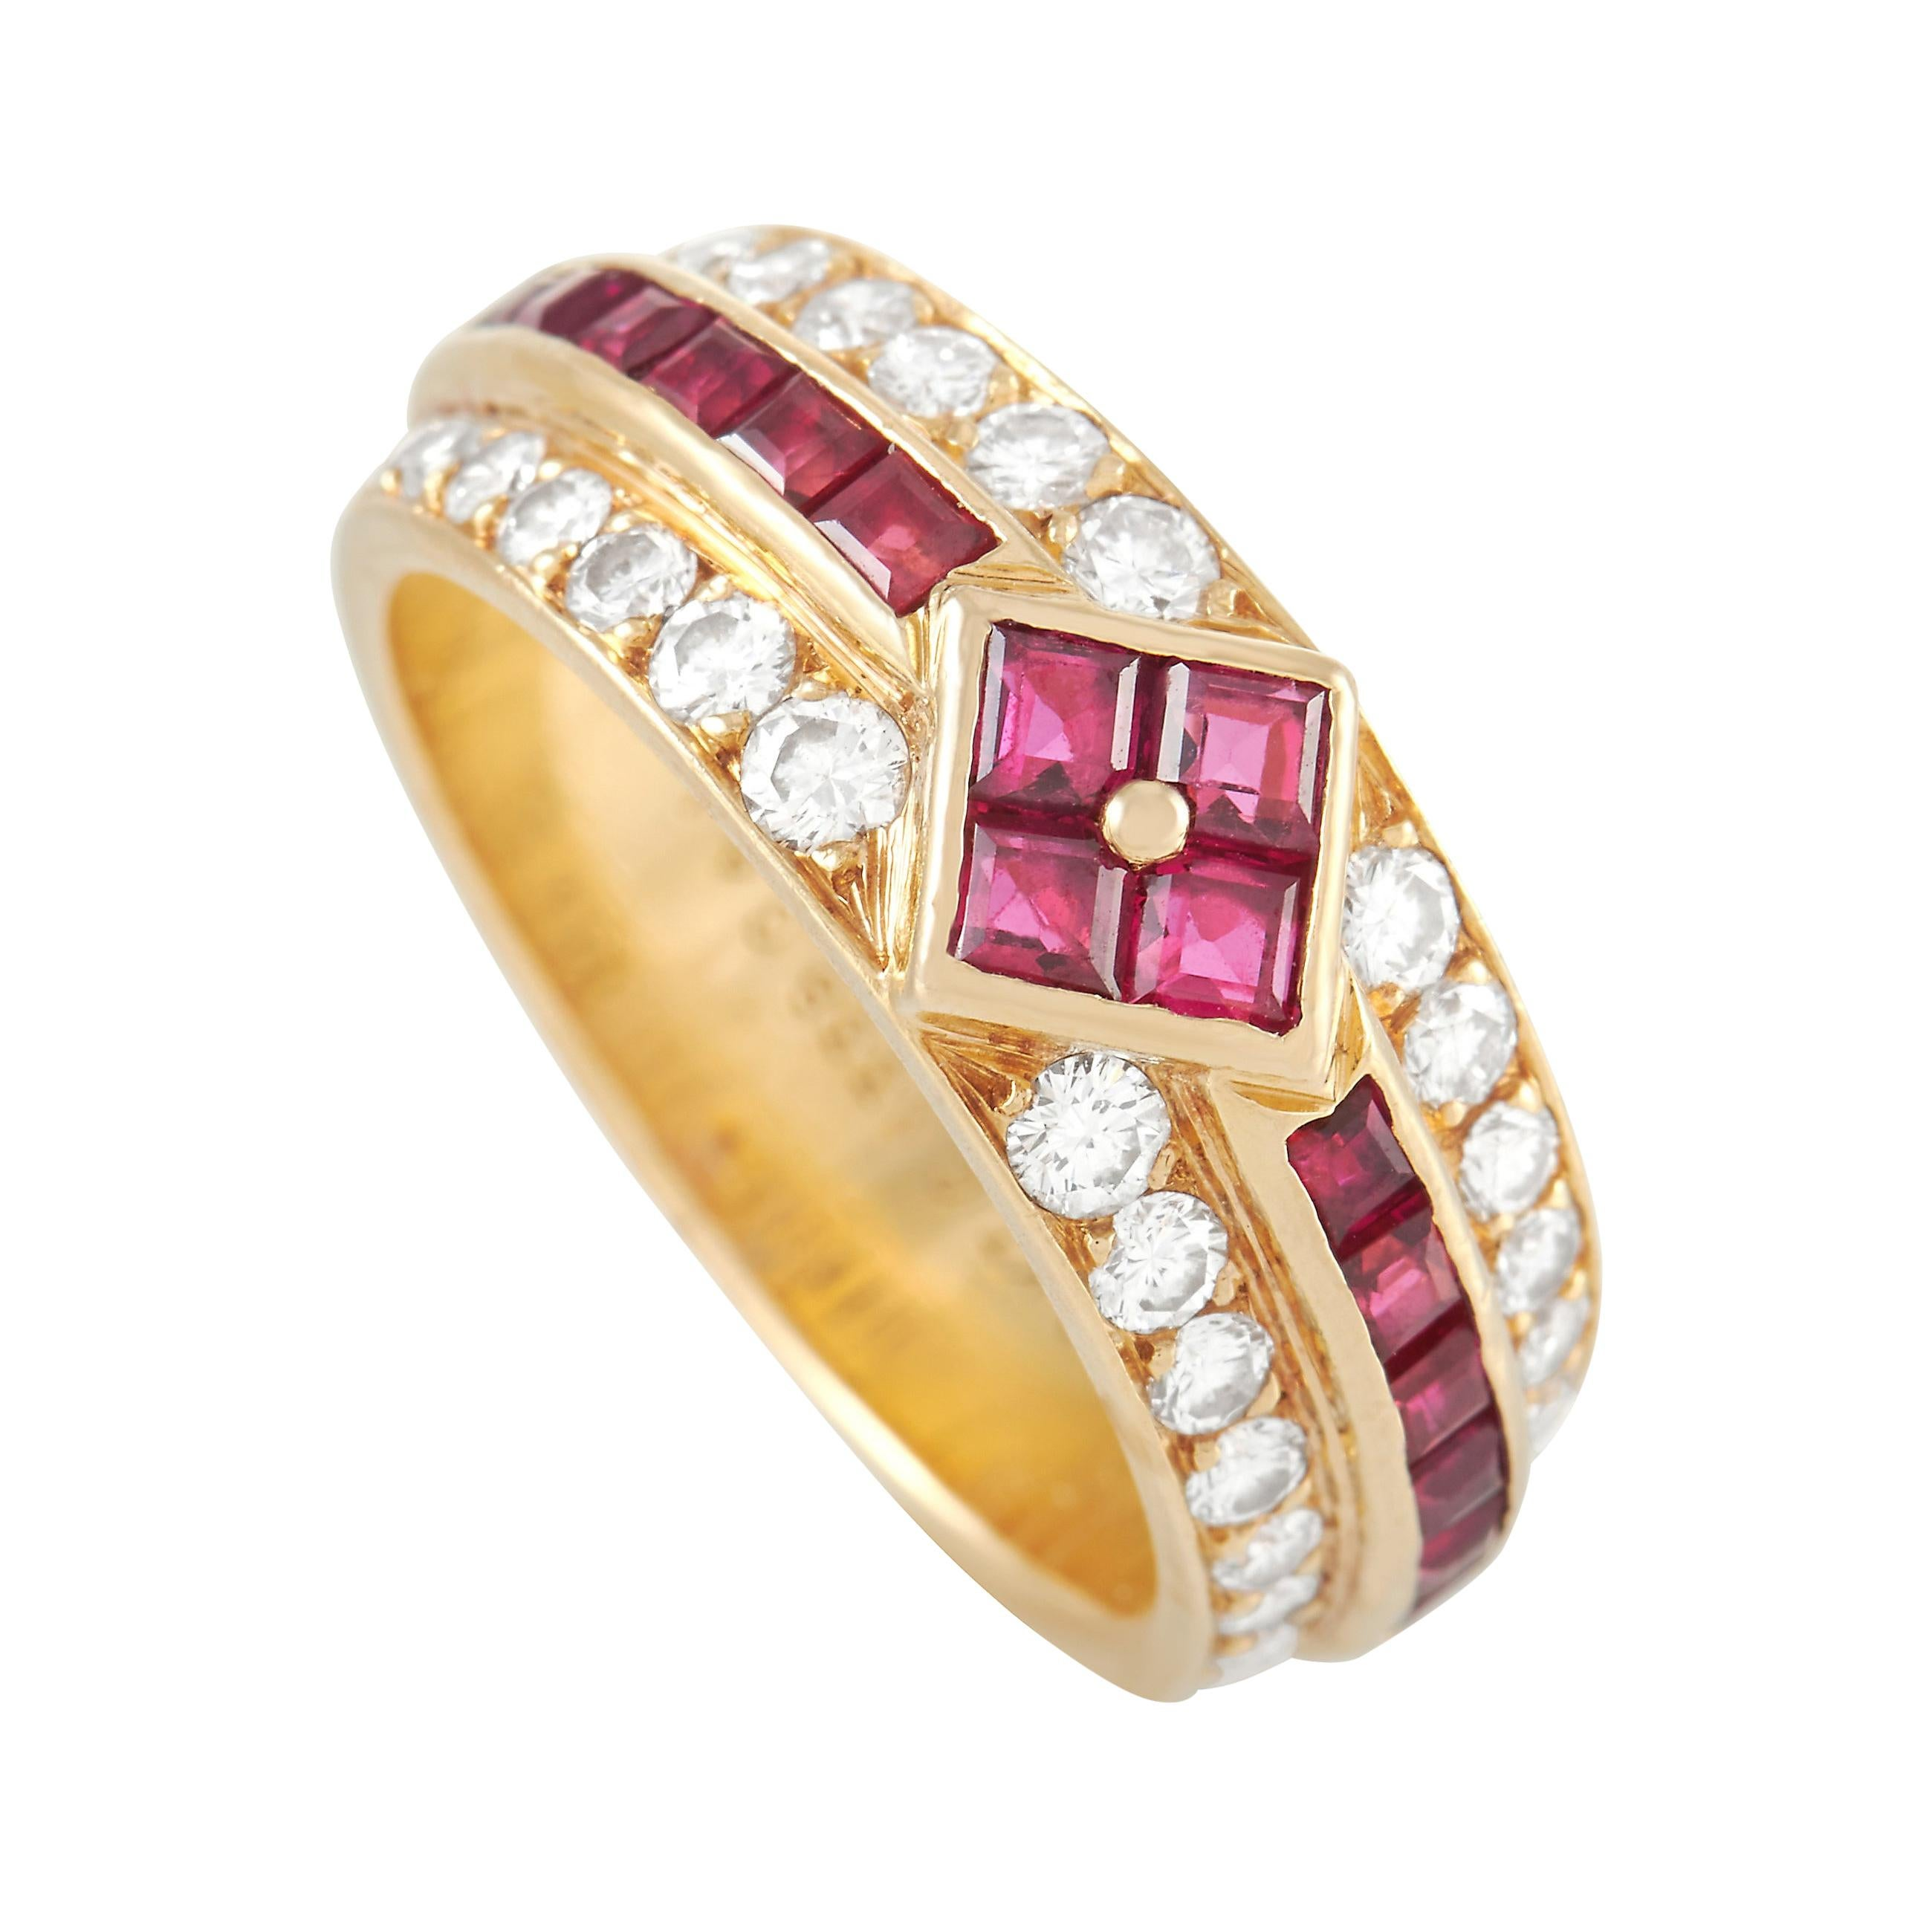 Van Cleef & Arpels Vintage 18k Yellow Gold 0.58 Ct Diamond and 1.10 Ct Ruby Ring